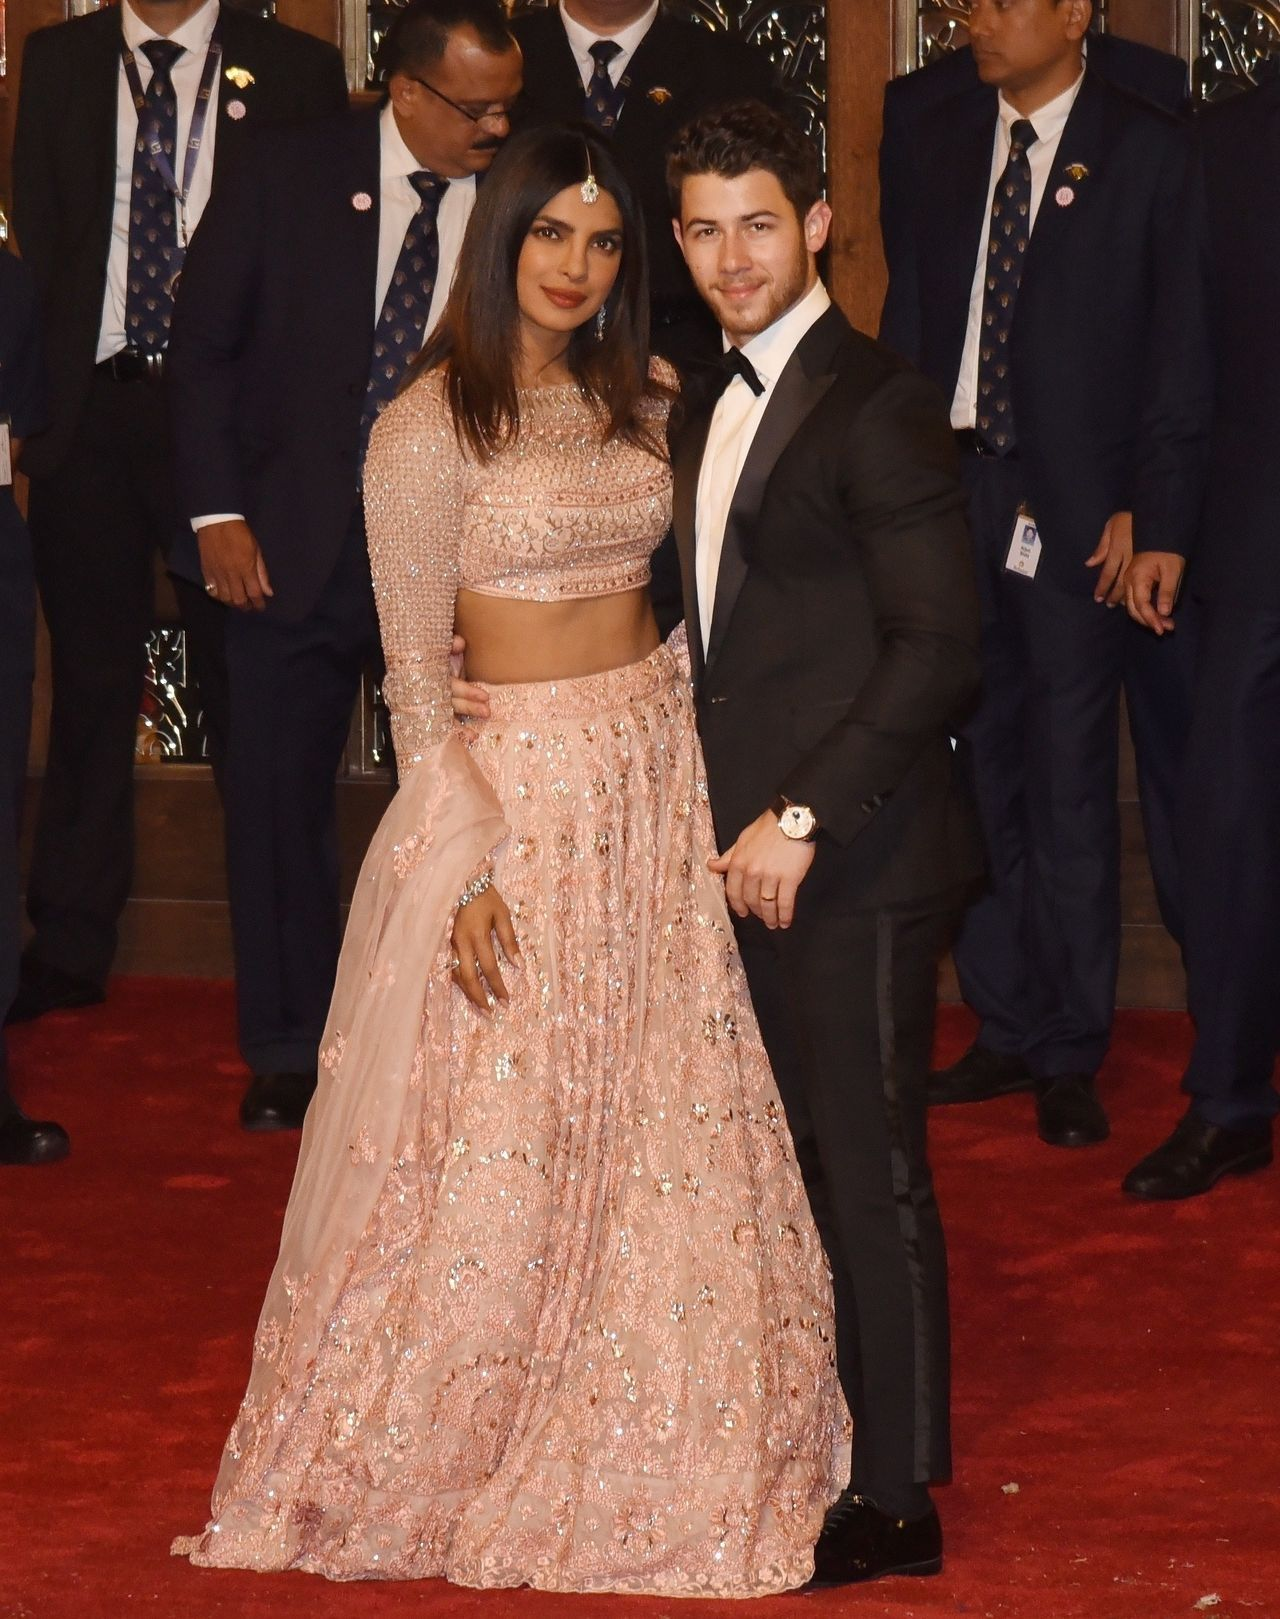 Priyanka Chopra and Nick Jonas seen arriving at Isha Ambani Wedding in Mumbai / Zed Jameson / BACKGRID , kod: Priyanka Chopra and Nick Jonas